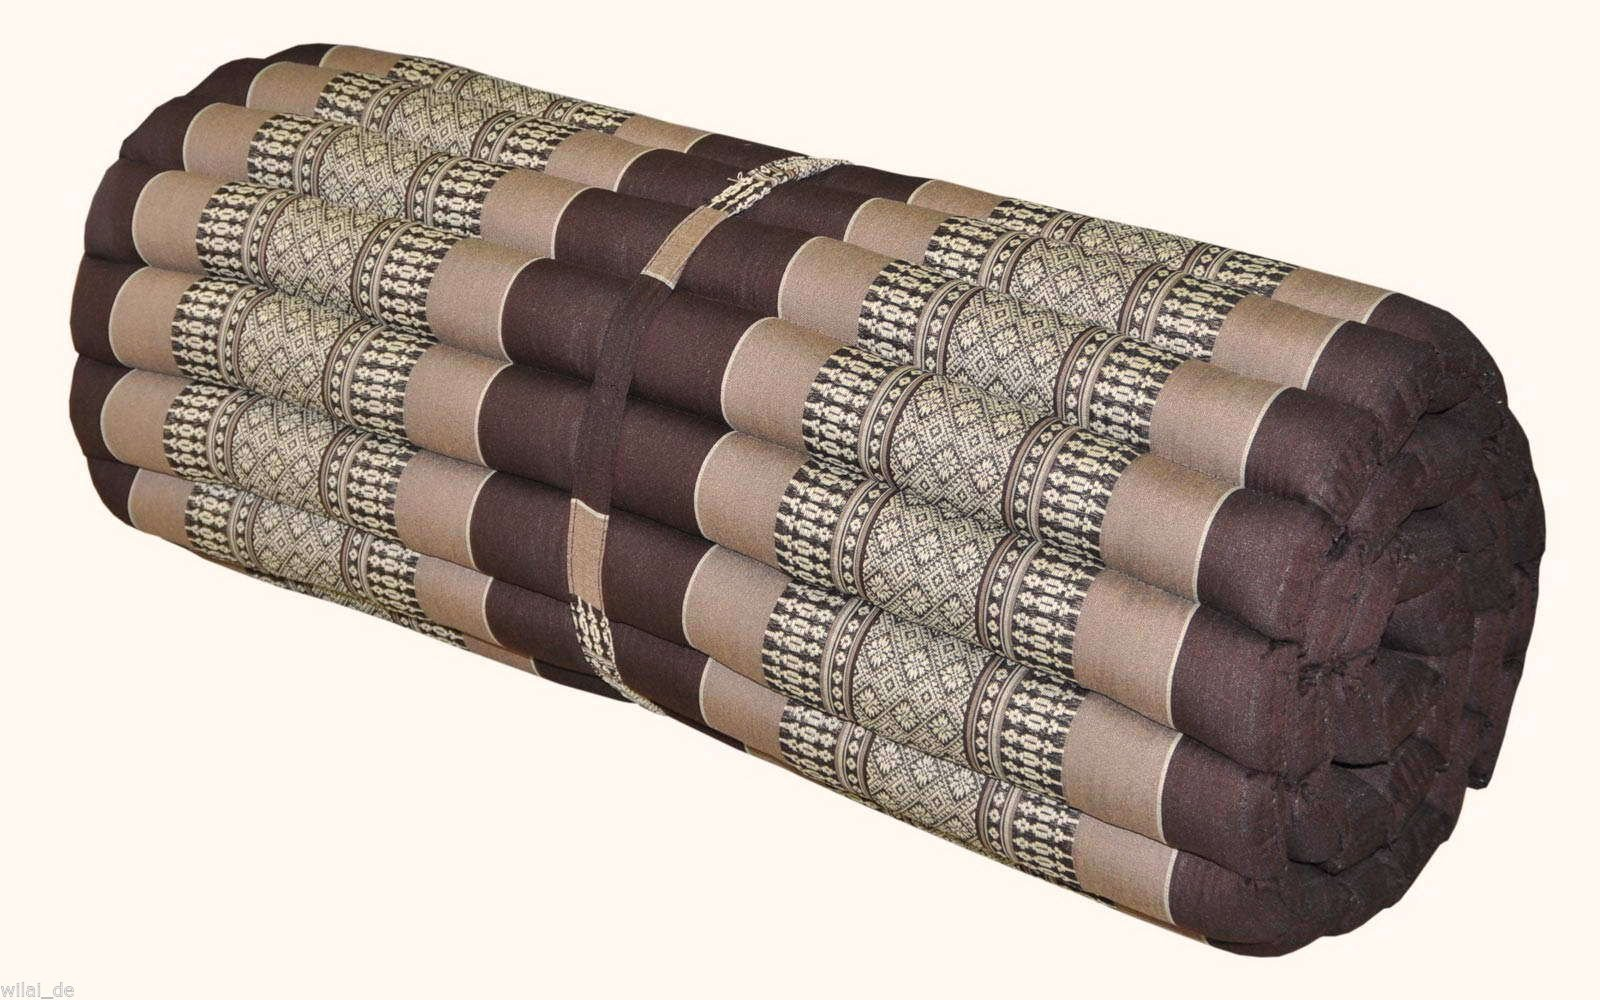 Noinoi@roll up Thai Mattress Kapok (Large, Brown) by NOINOI